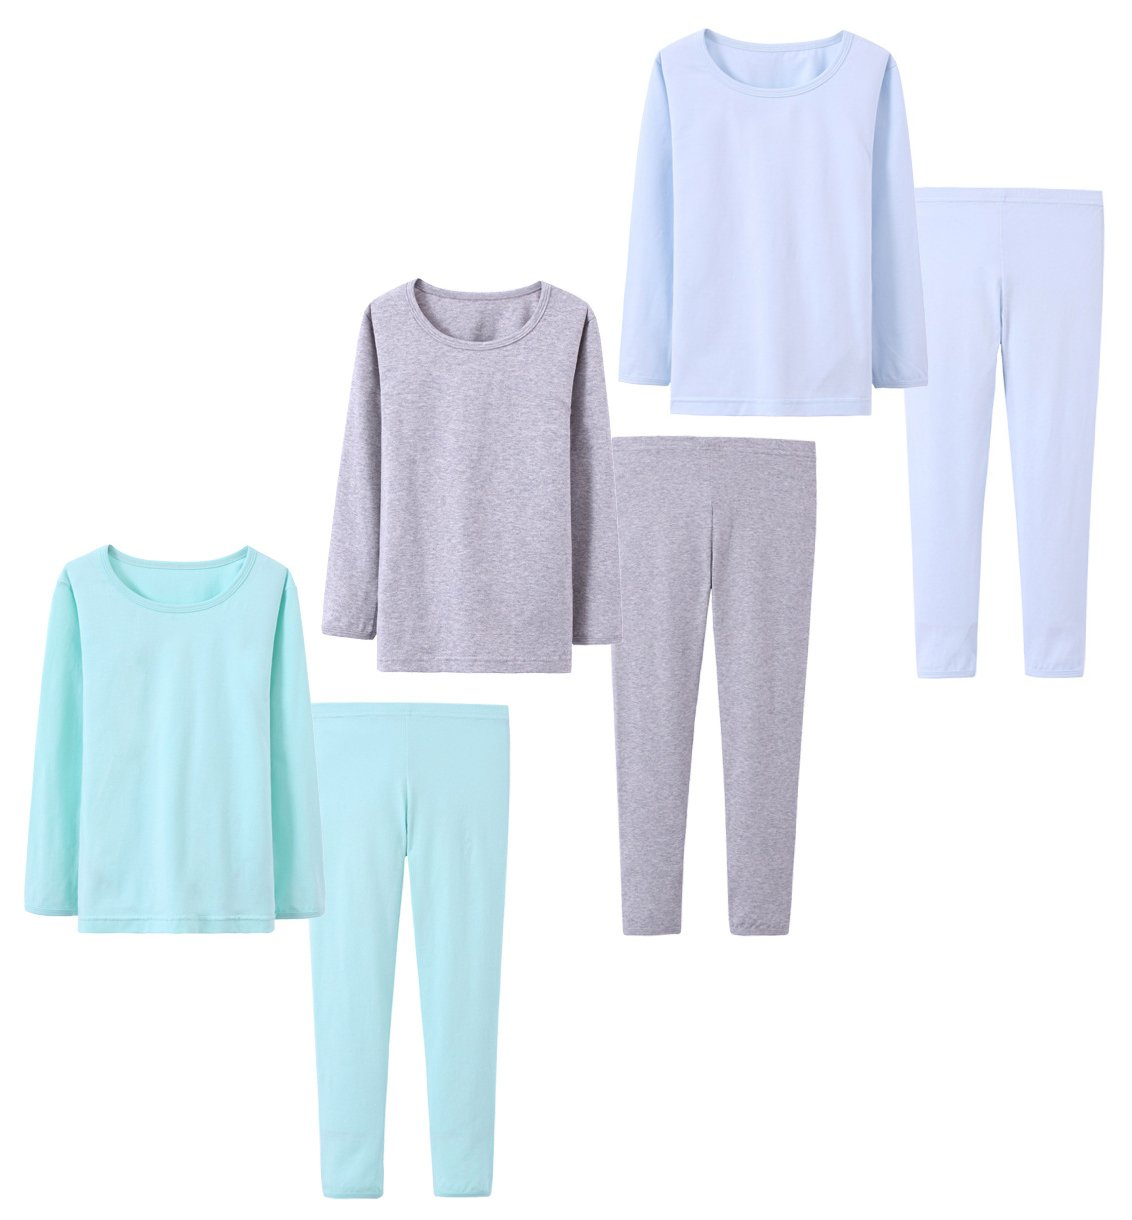 Abalacoco Big Girls Boys 3 Sets (6pcs) Cotton Longs sleeve Undershirts Autumn Winter Thermal Underwear Pants Suit 4-12T (Blue/Grey/Green,5-6 Years) by Abalacoco